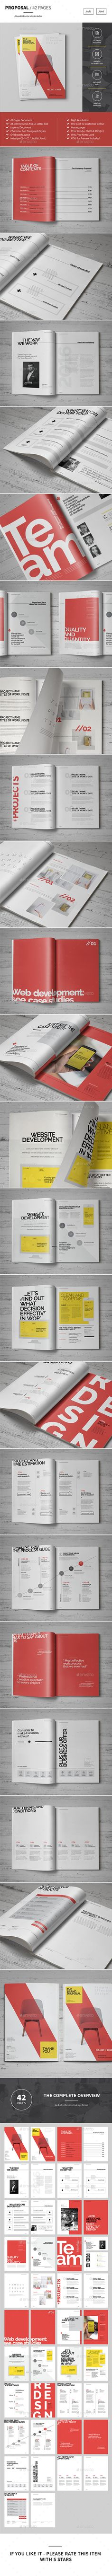 Gstudio Business Proposal Template Pinterest